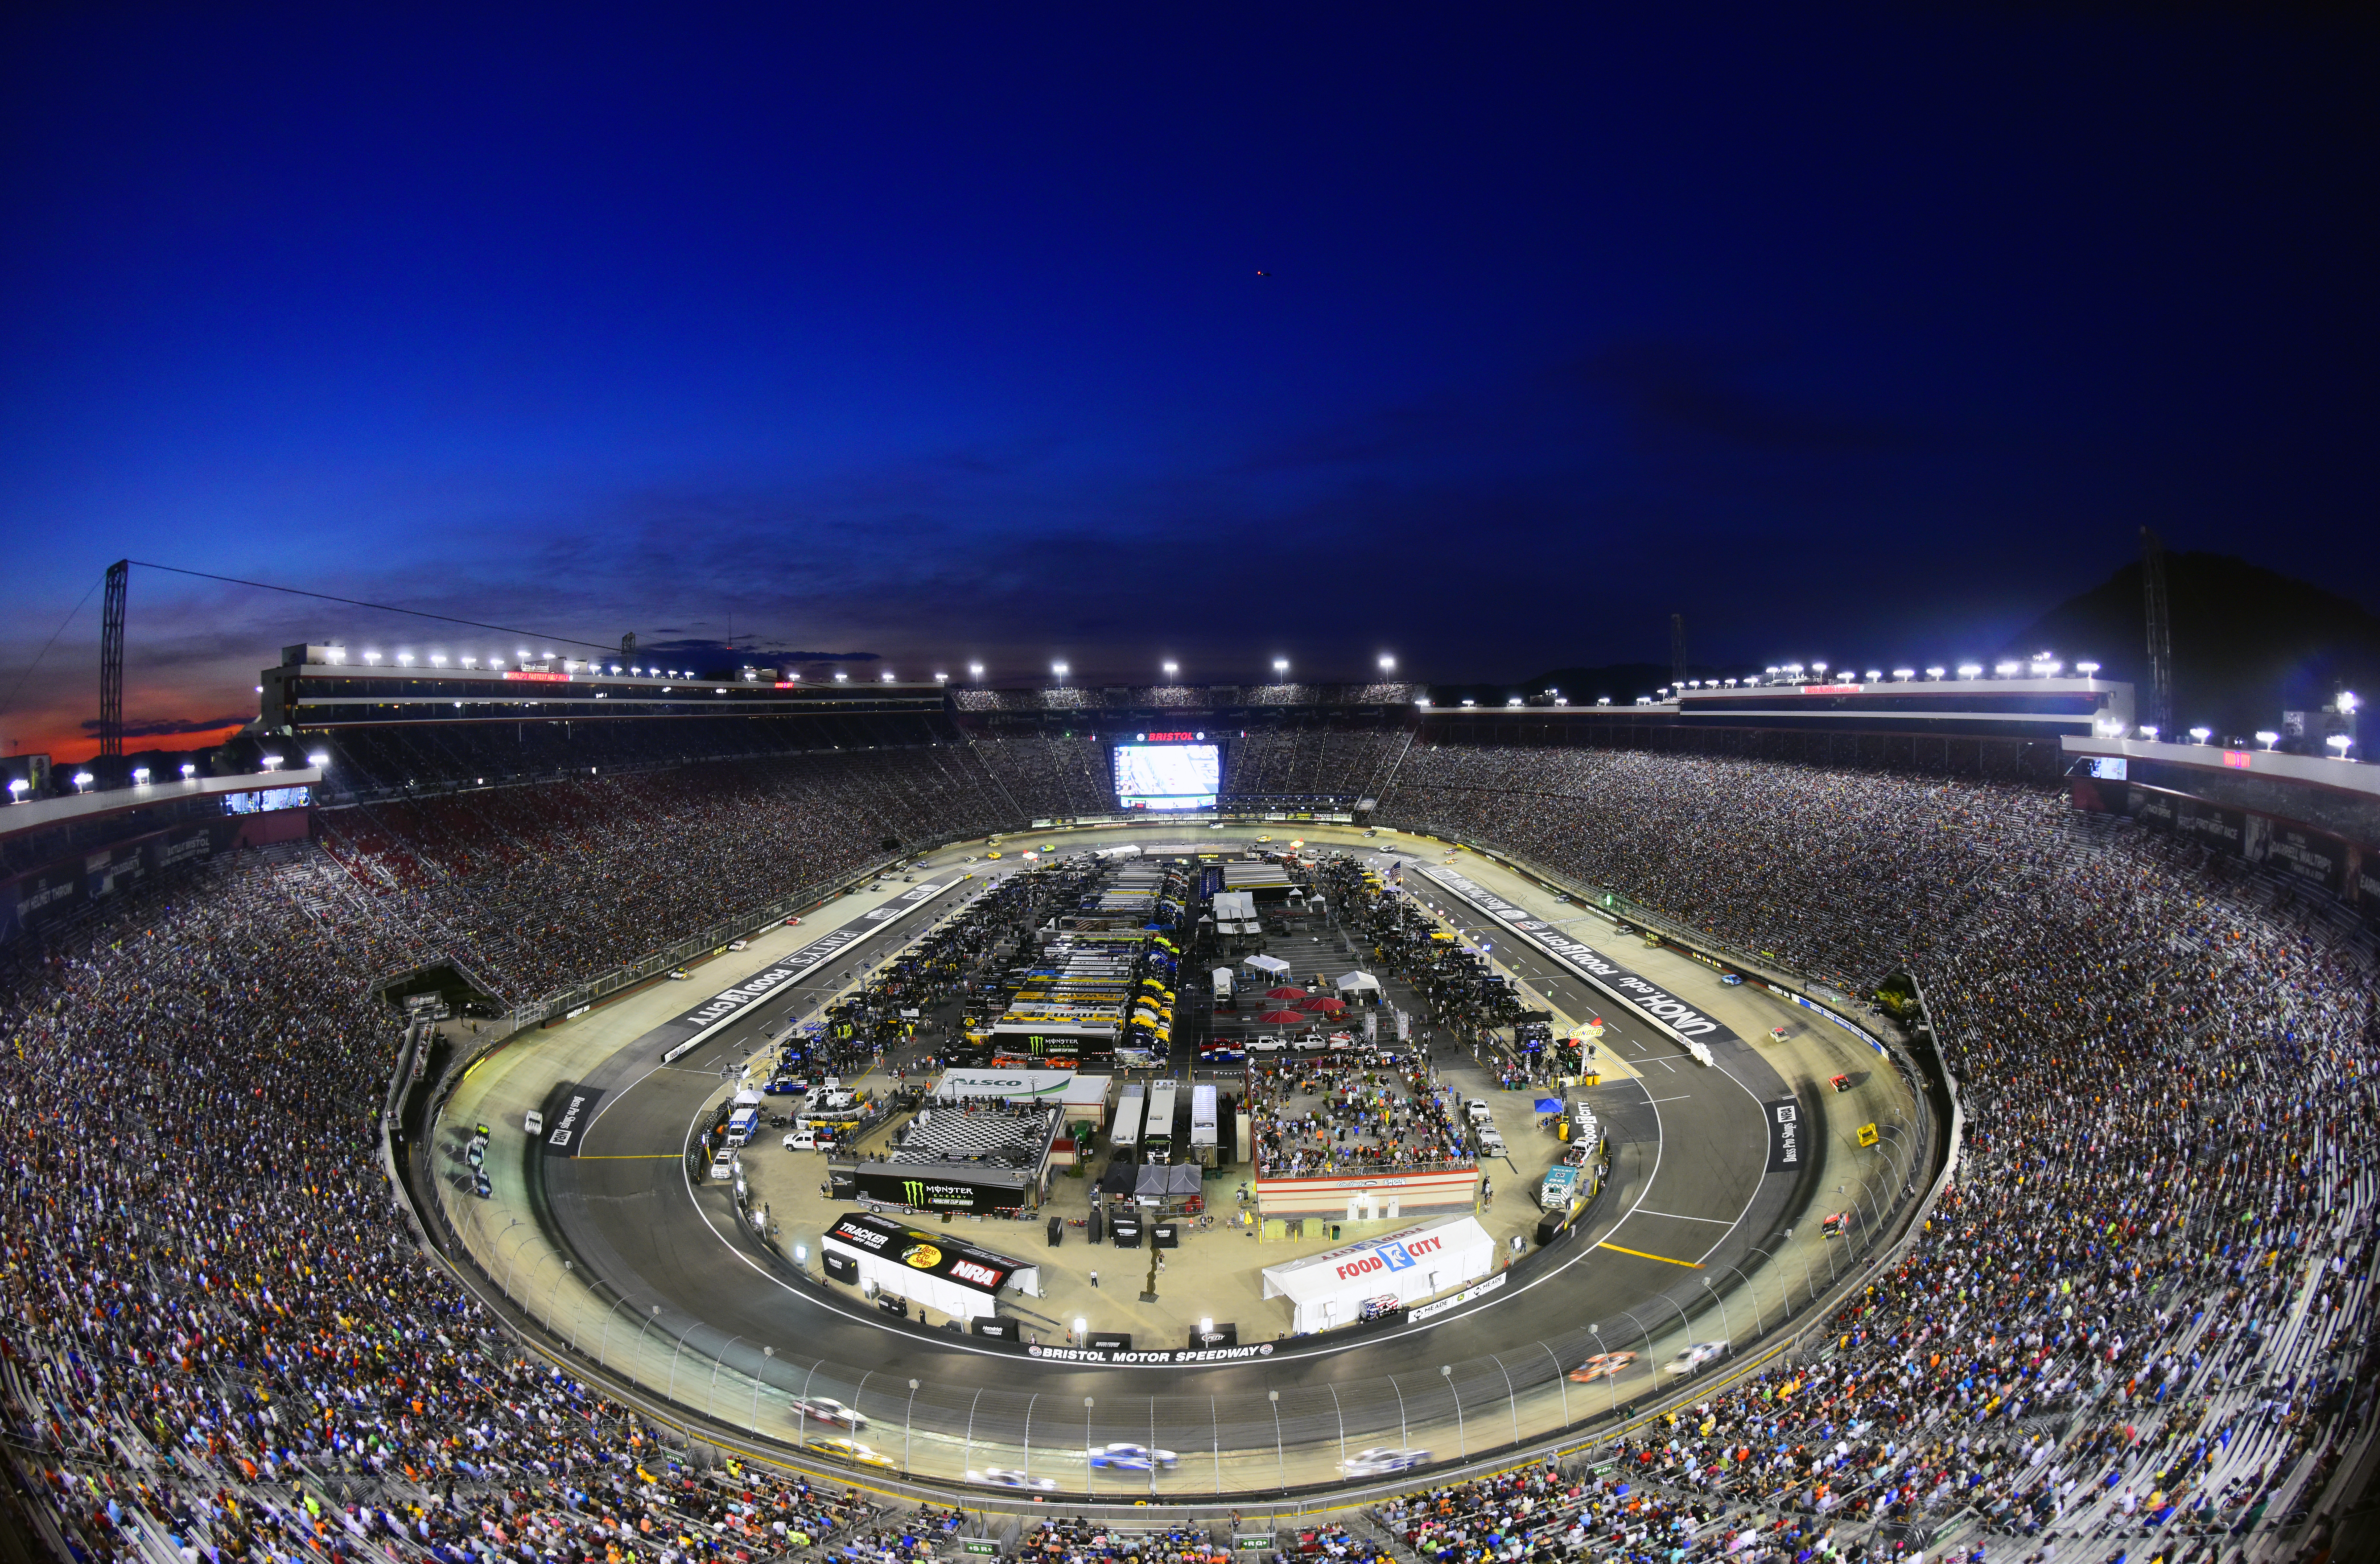 A general view of the action during the Monster Energy NASCAR Cup Series Bass Pro Shops NRA Night Race at Bristol Motor Speedway on August 17, 2019 in Bristol, Tennessee.